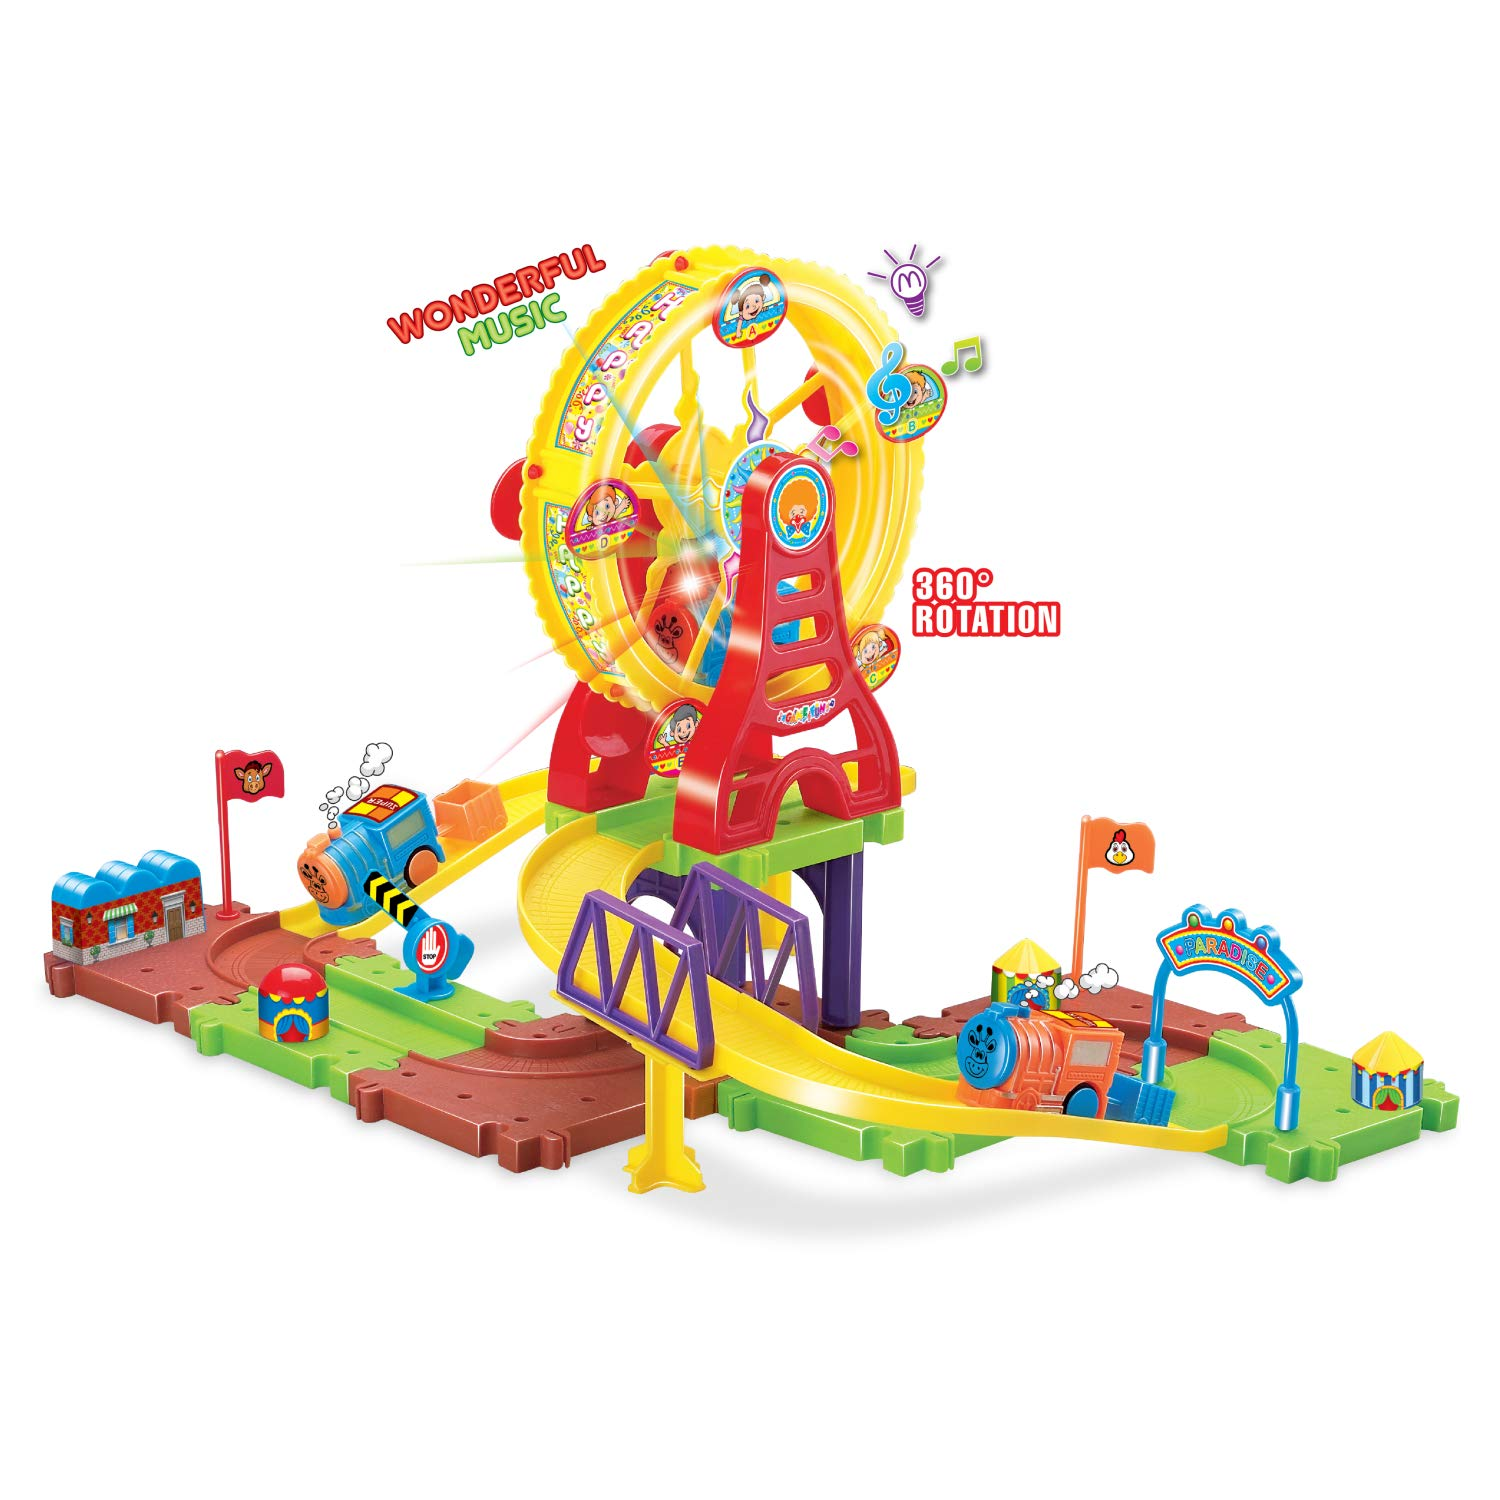 Fun set for ages 3 and up